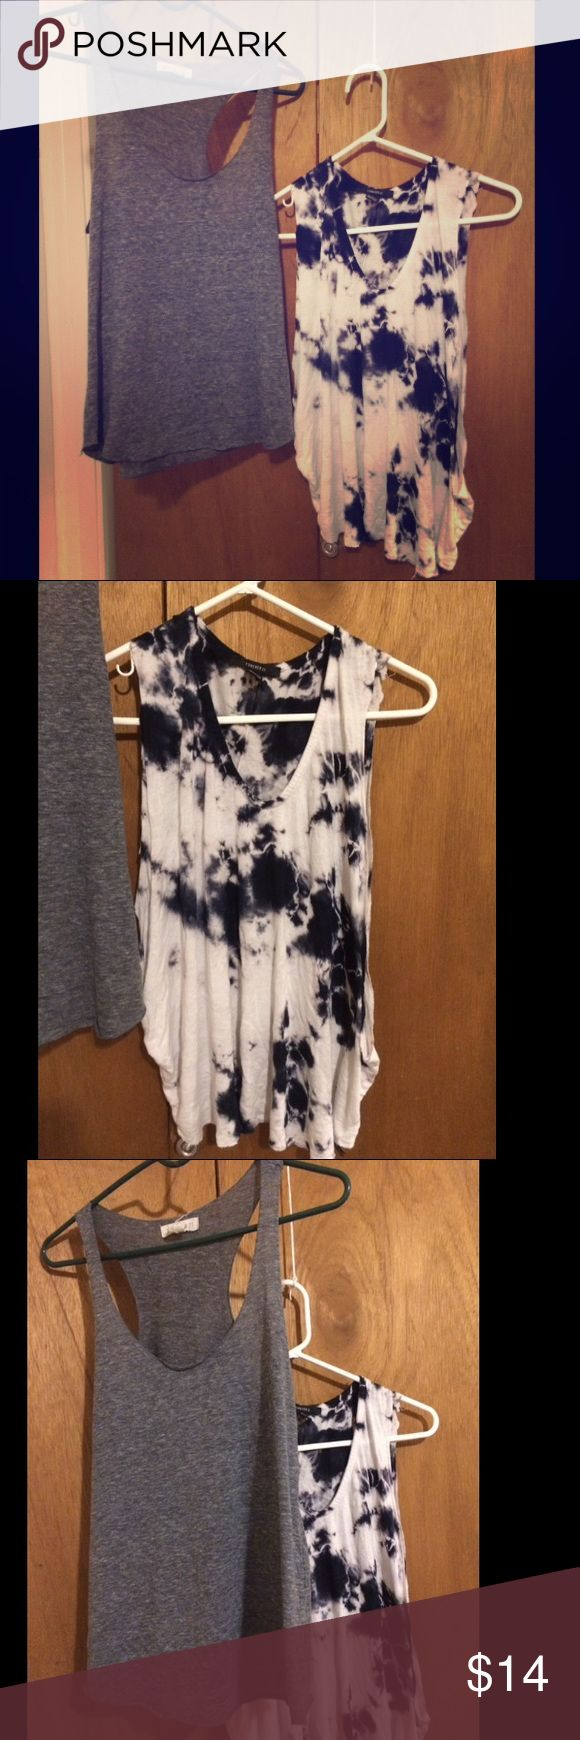 Basic bundle tie dye  tank and basic razorback Grey razor back tank and tie dye tank both from forever 21 size small. Both fit true to size. Tie dye is from the festival collection and the grey is just a basic tank - would be super cute with high waisted jeans abs a cardigan Forever 21 Tops Tank Tops